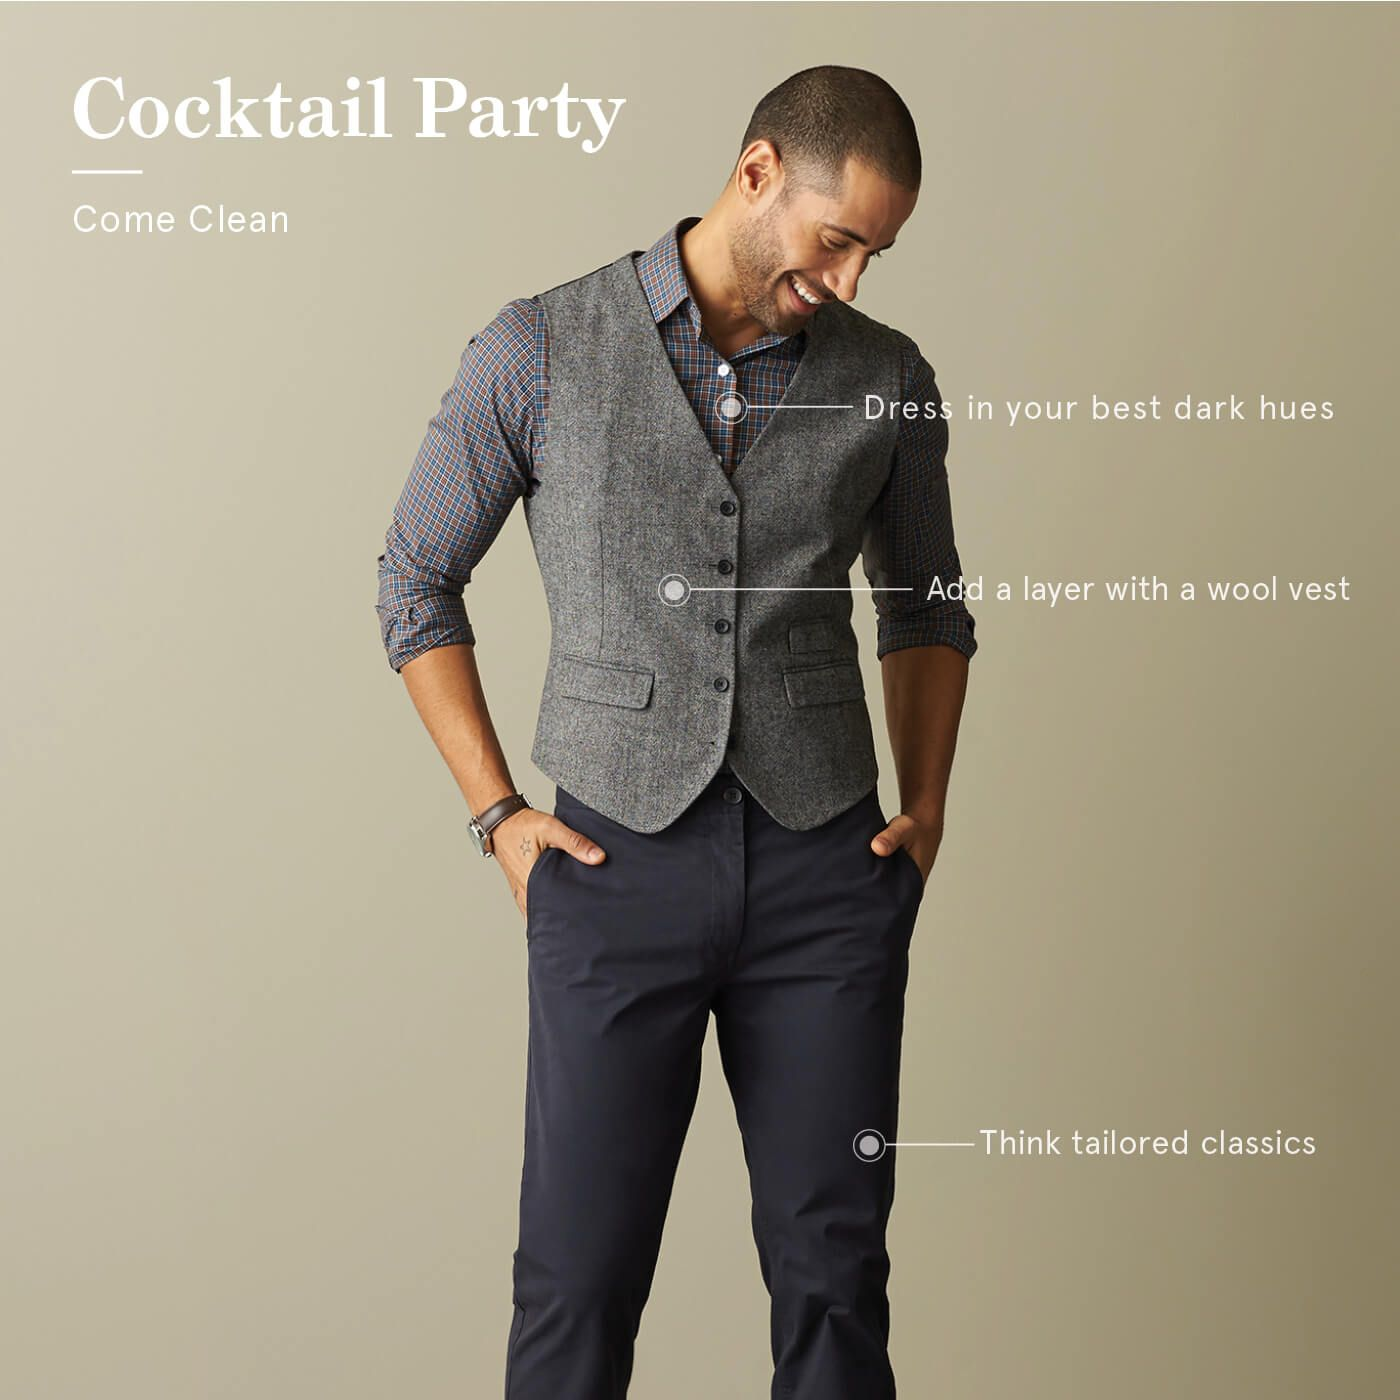 Cocktail party dress code man